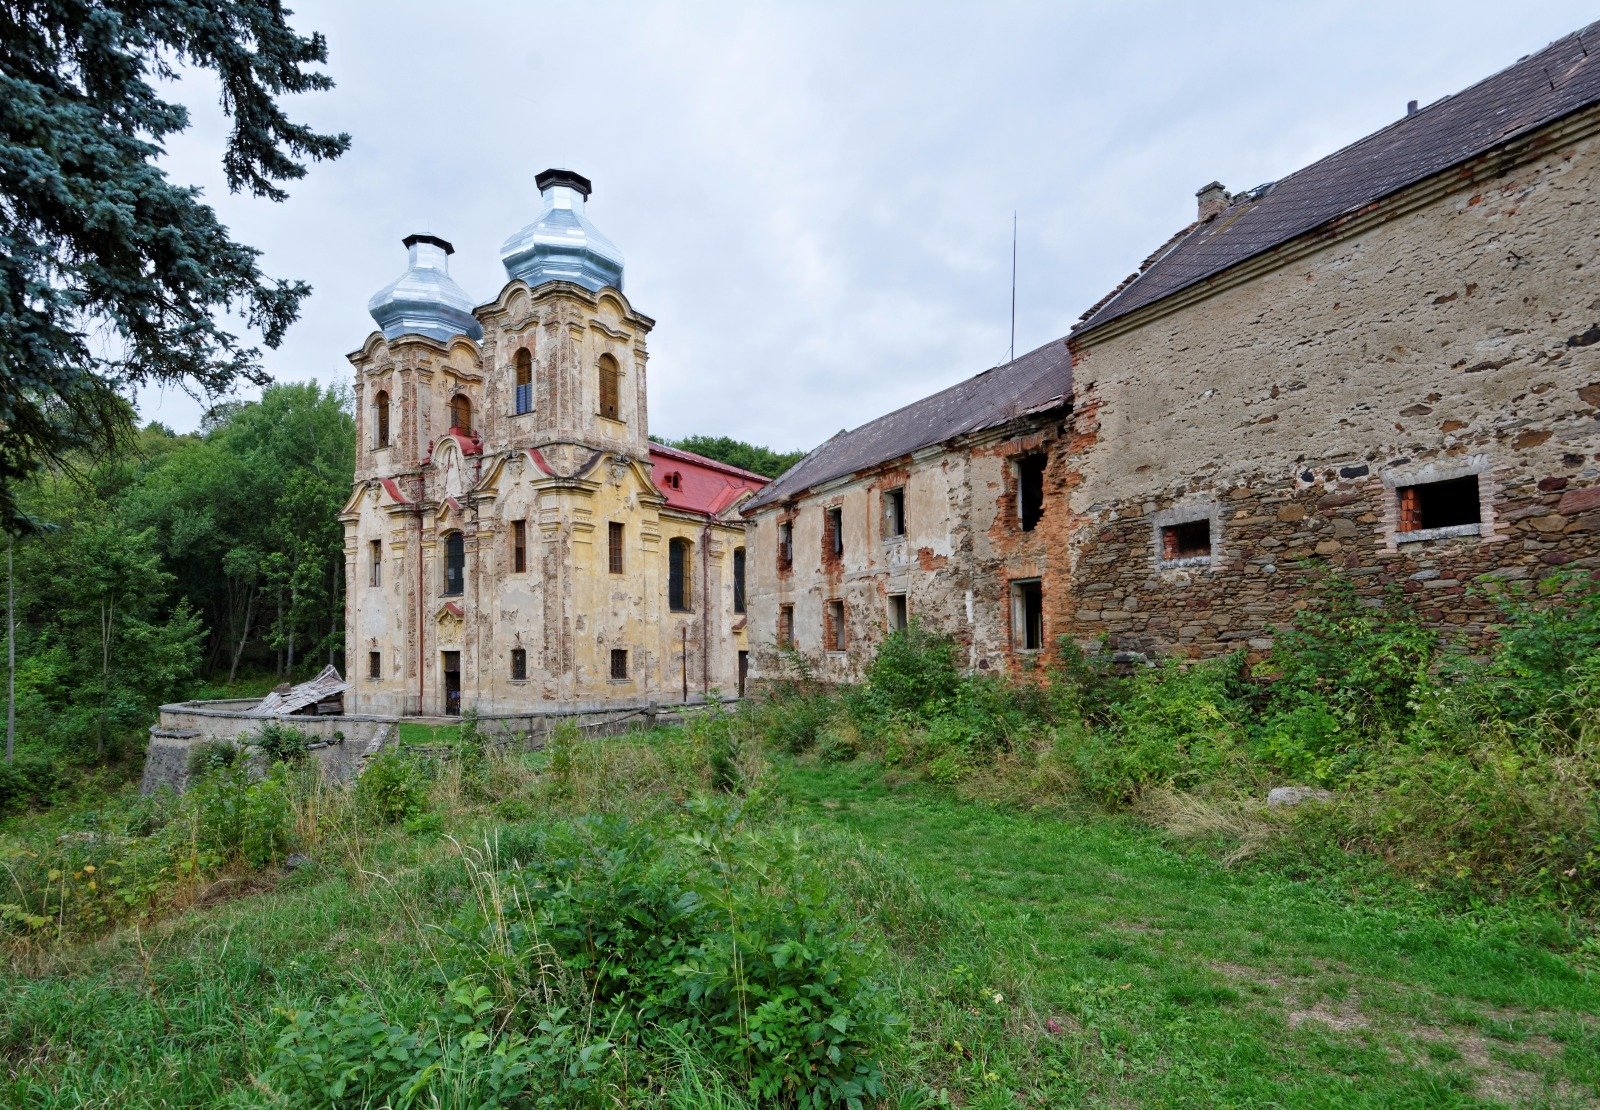 Church_of_the_Visitation_of_Our_Lady_in_Skoky_(8384).jpg